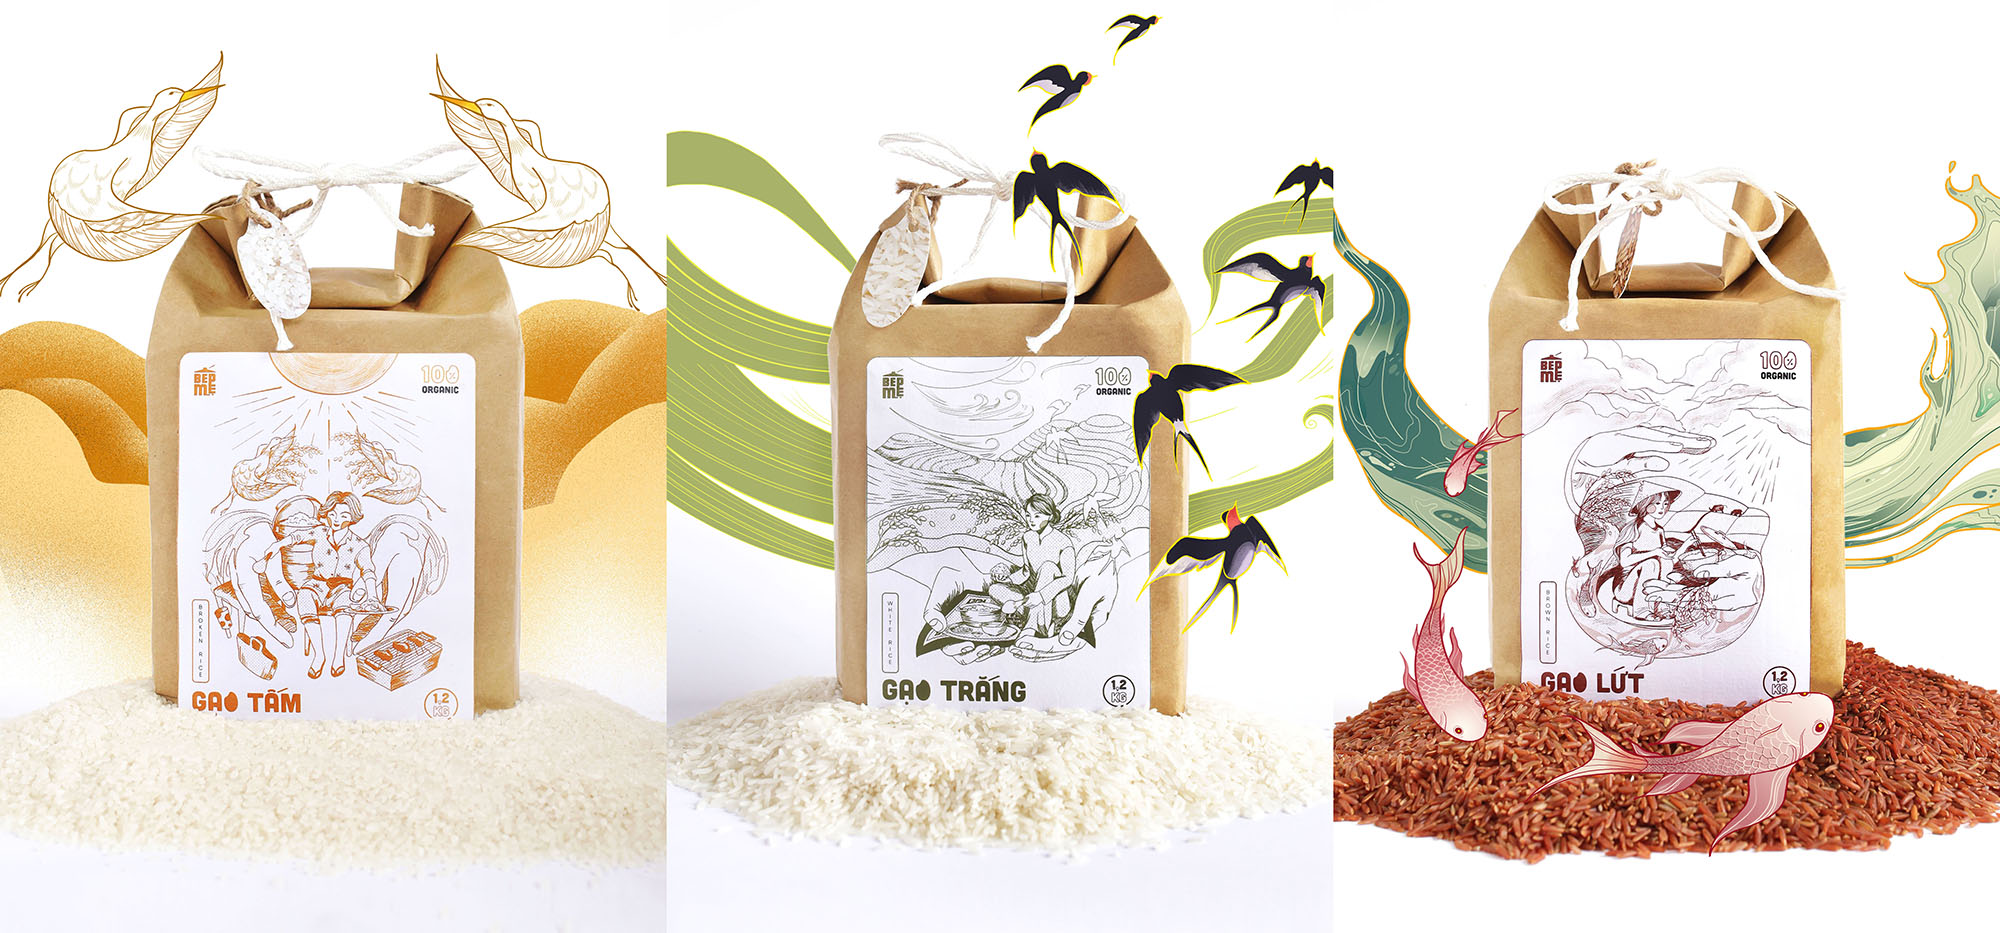 Mother Kitchen Organic Rice Student Packaging Design